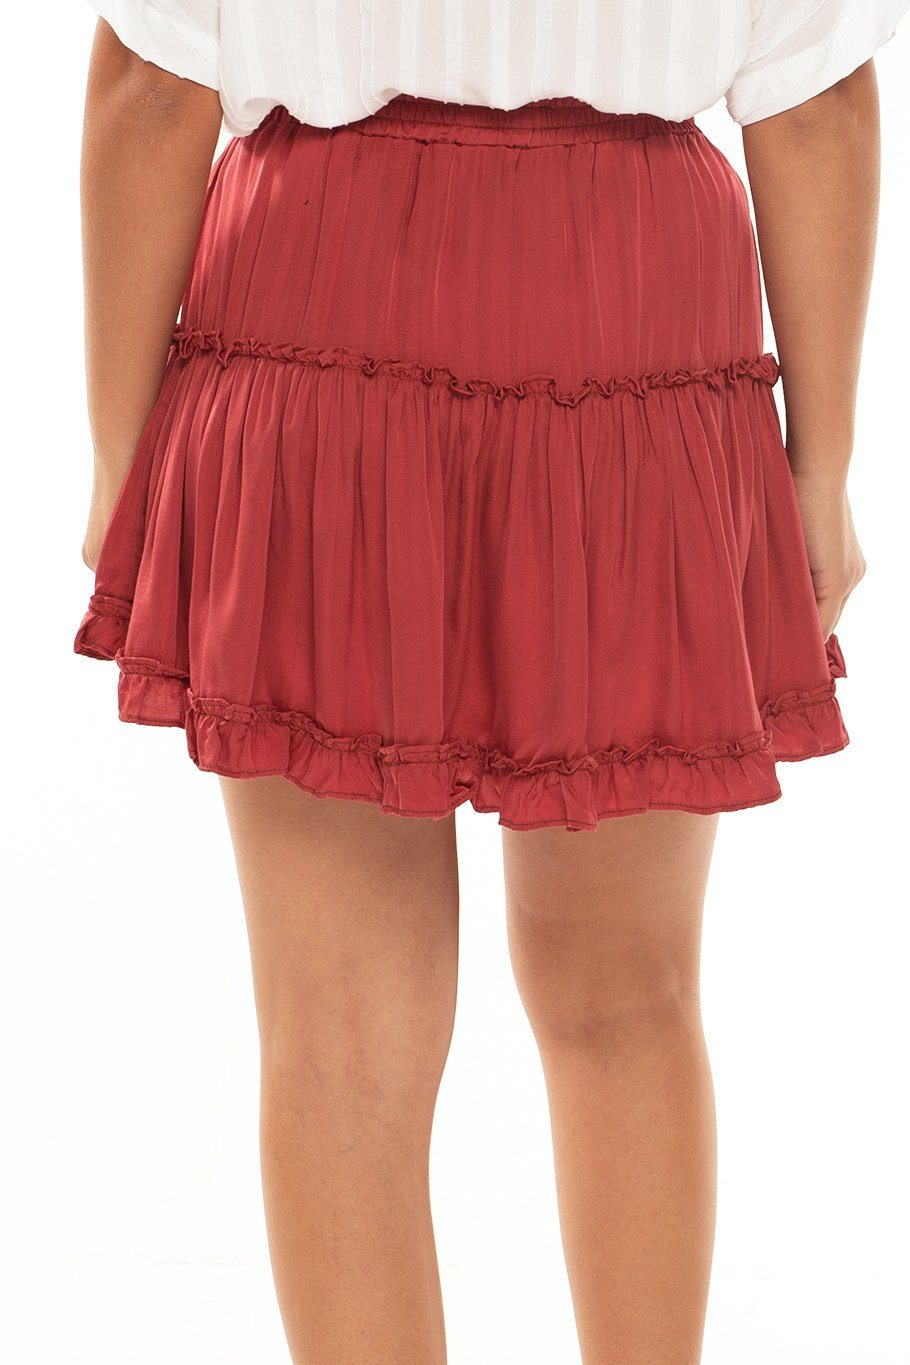 Shoreside Skort - Clay Red - Shore